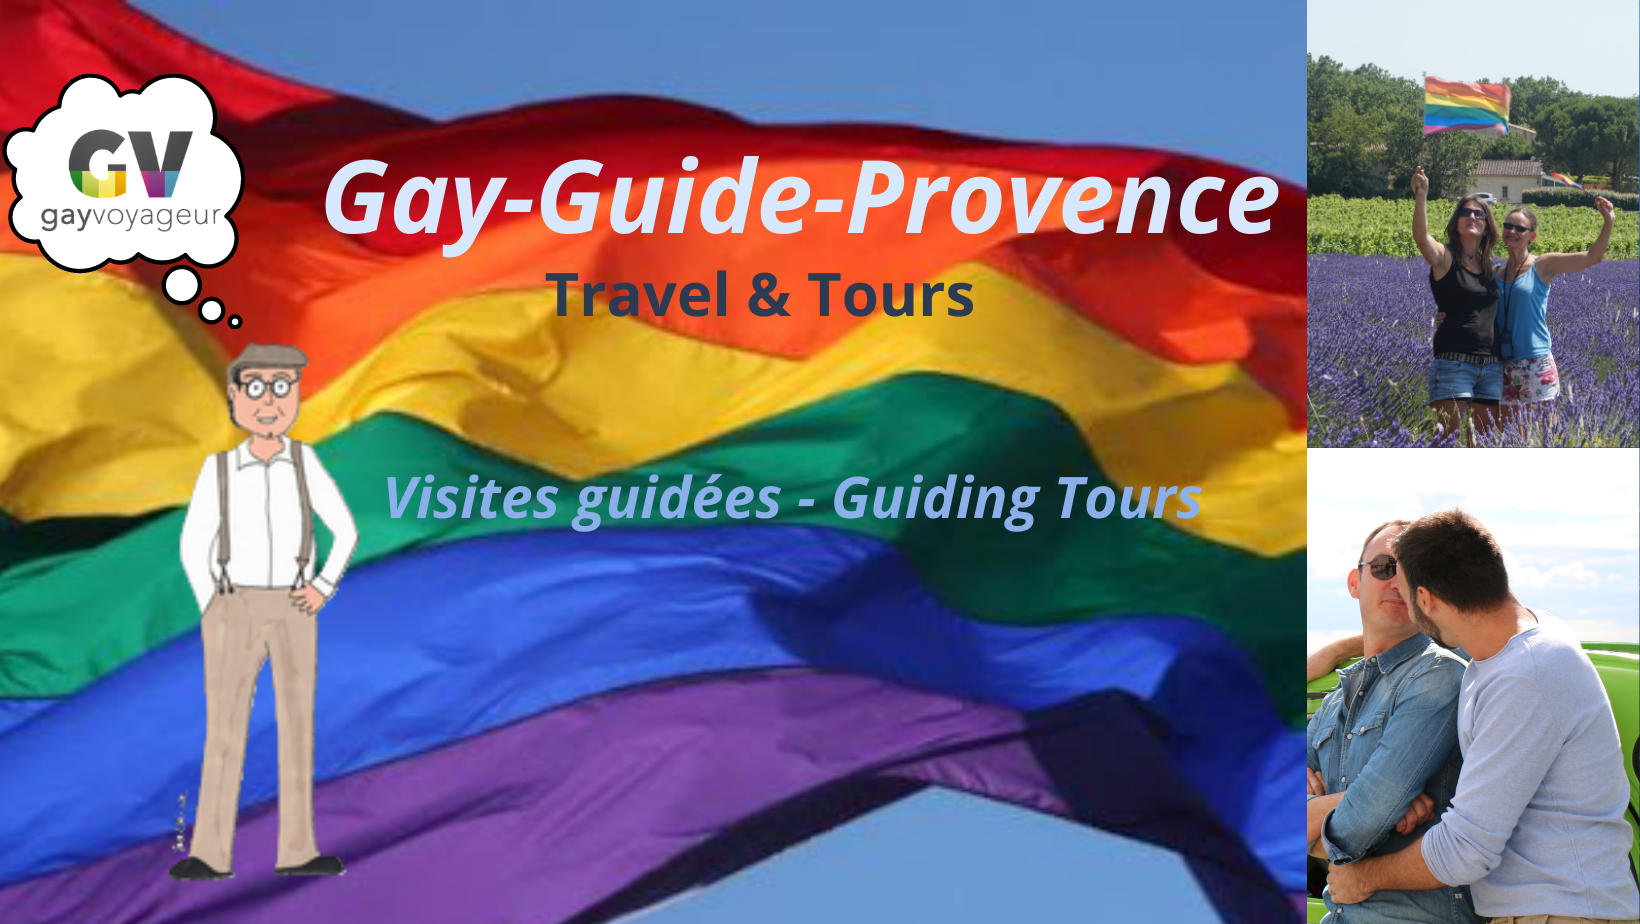 Gay-Guide-Provence_Gay-Voyageur